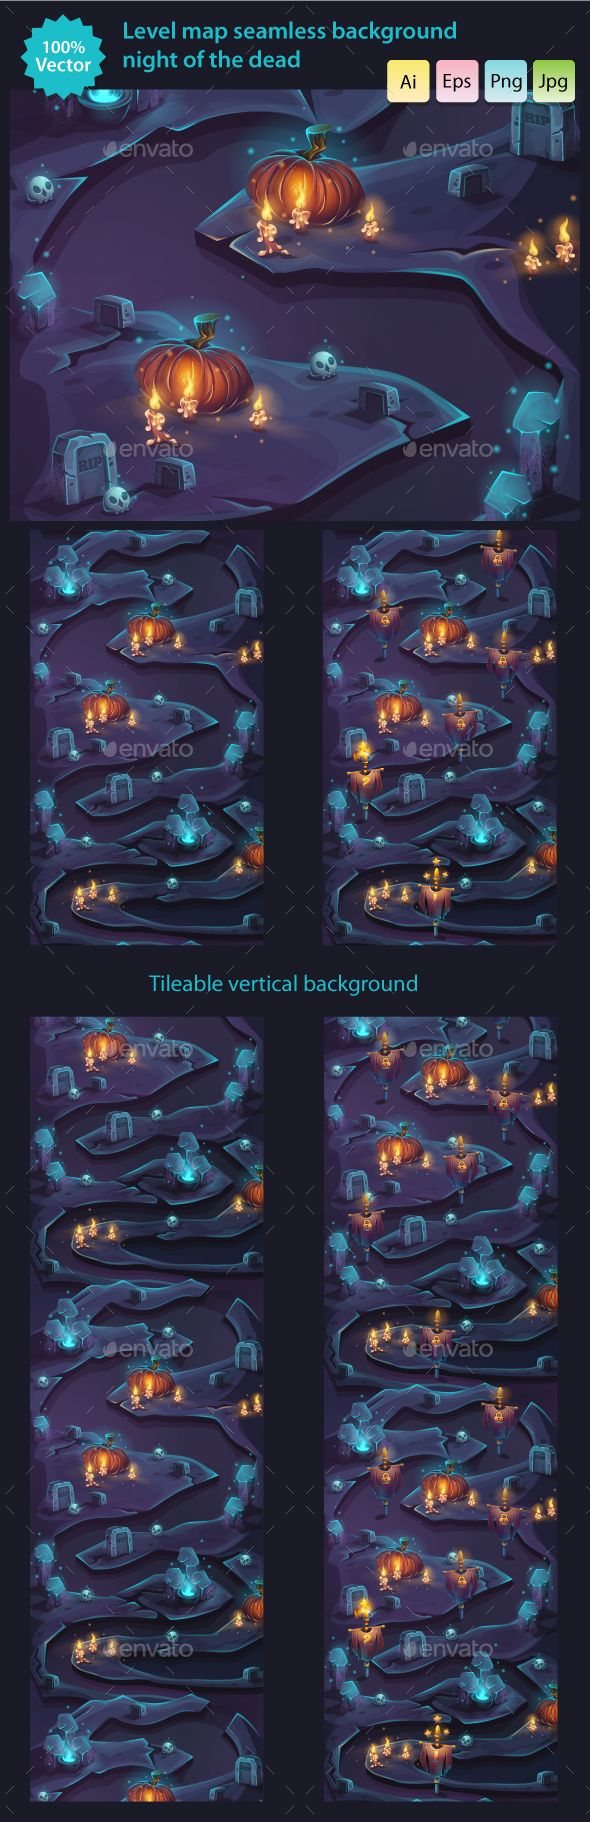 Night of the Dead - Seamless Background Level Map - Backgrounds Game Assets | Download: https://graphicriver.net/item/night-of-the-dead-seamless-background-level-map/19051369?ref=sinzo